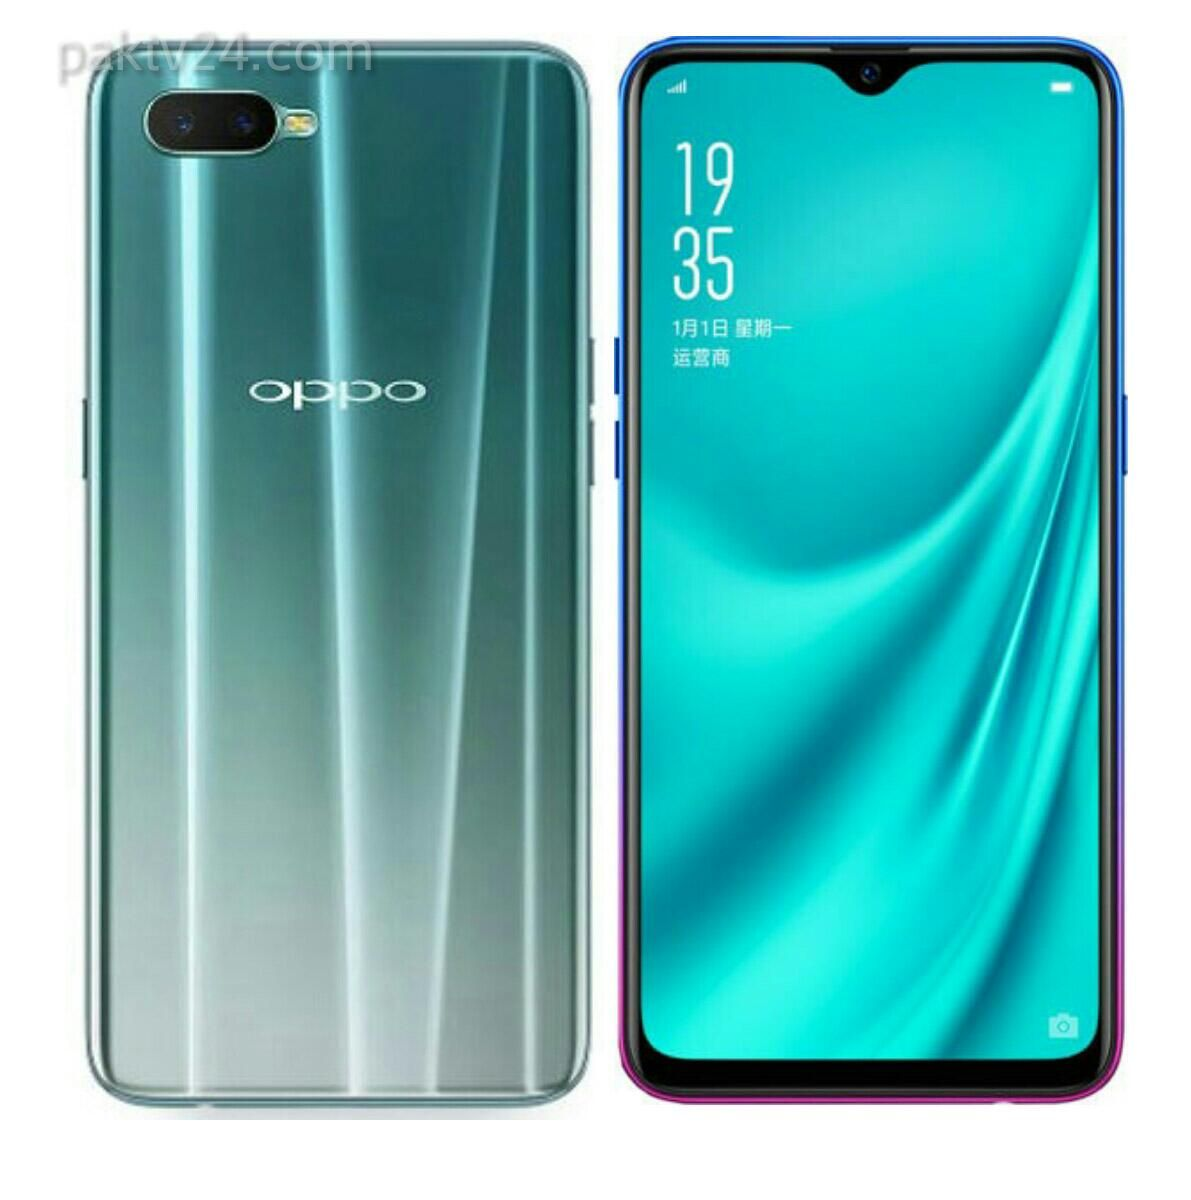 Oppo r15x is a dual sim nano mobile with 128gb build in